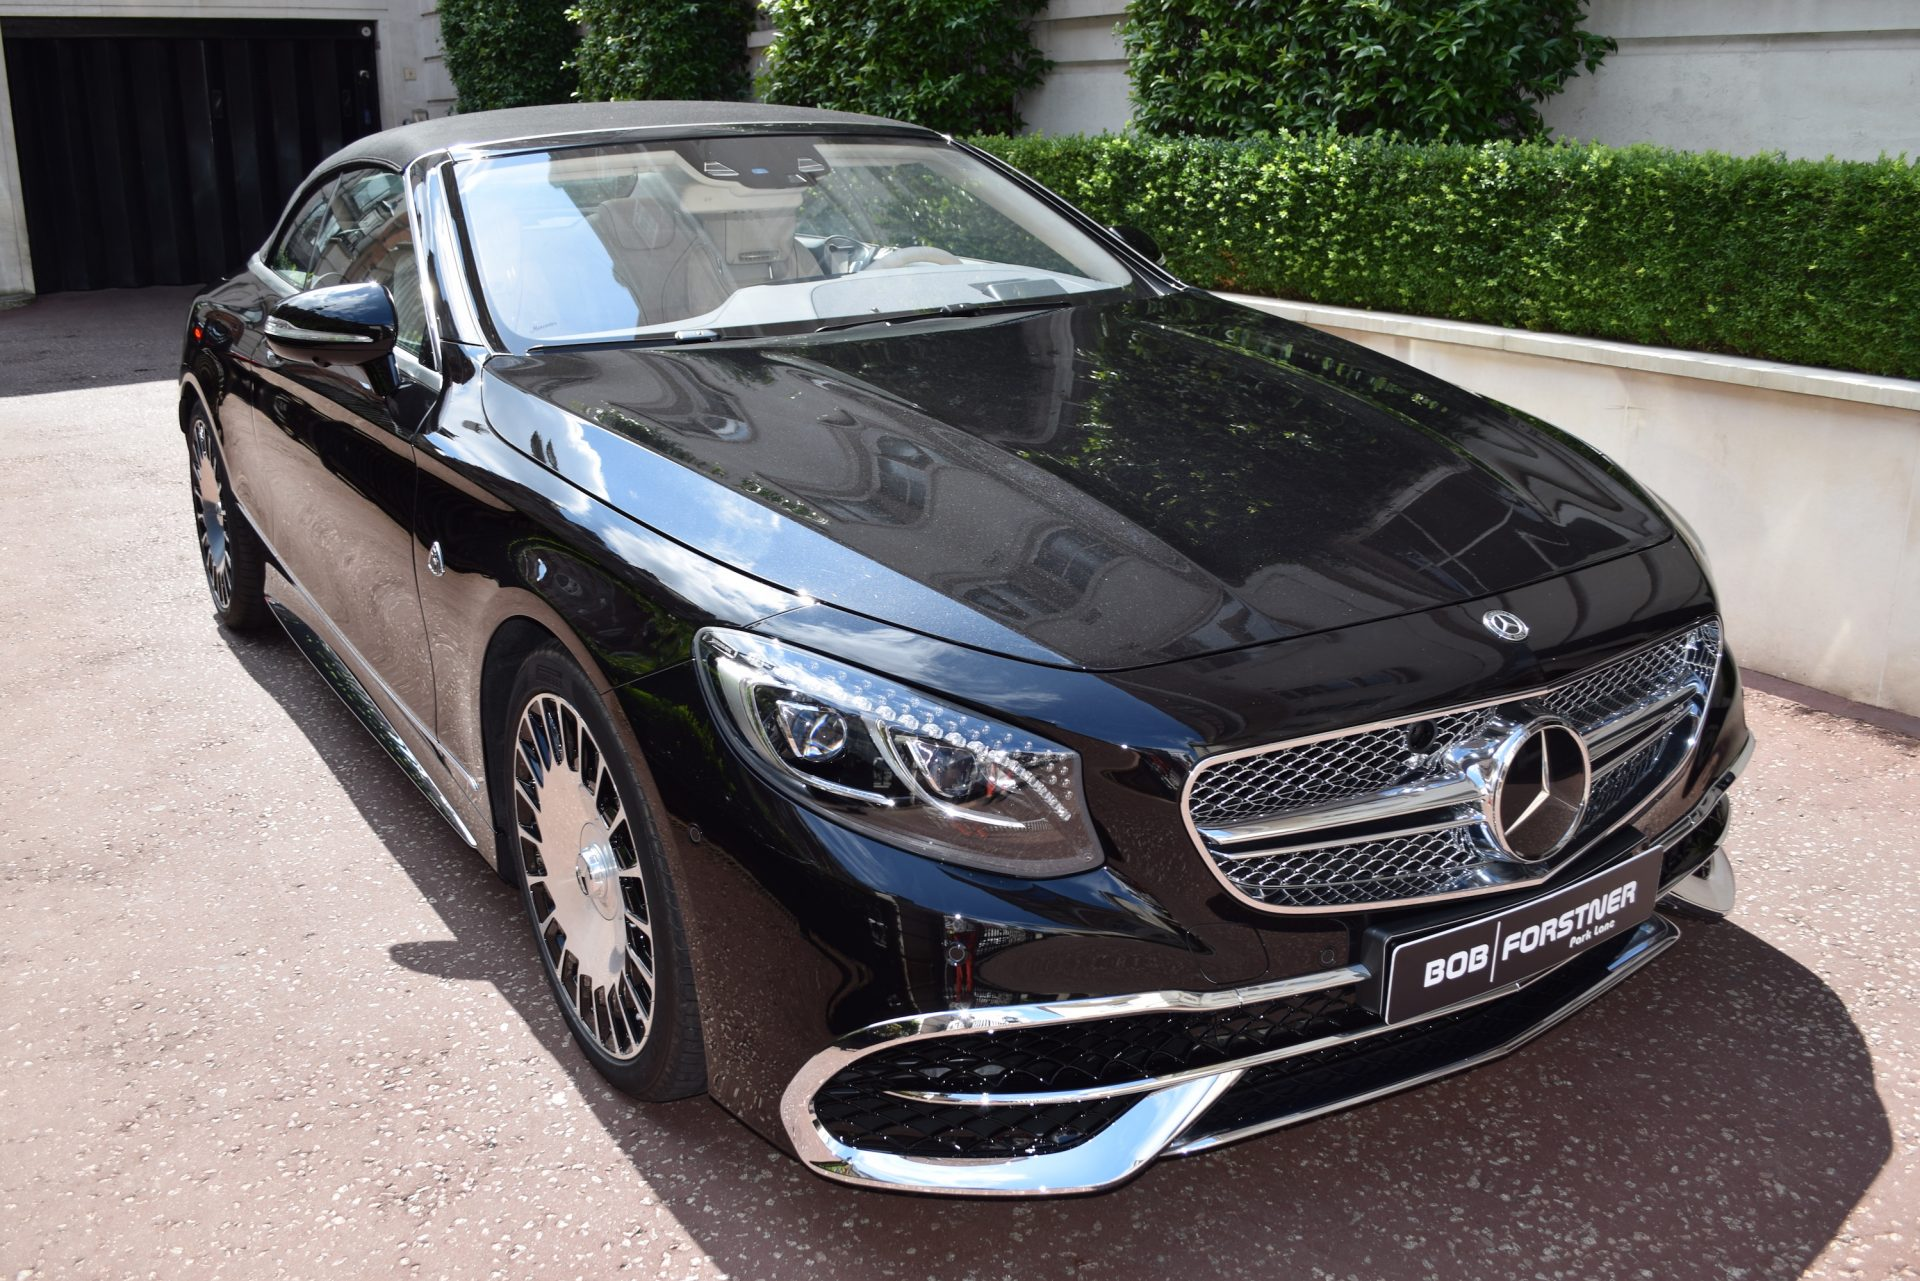 Mercedes-Maybach S650 Convertible – 1 out of 300 ONLY